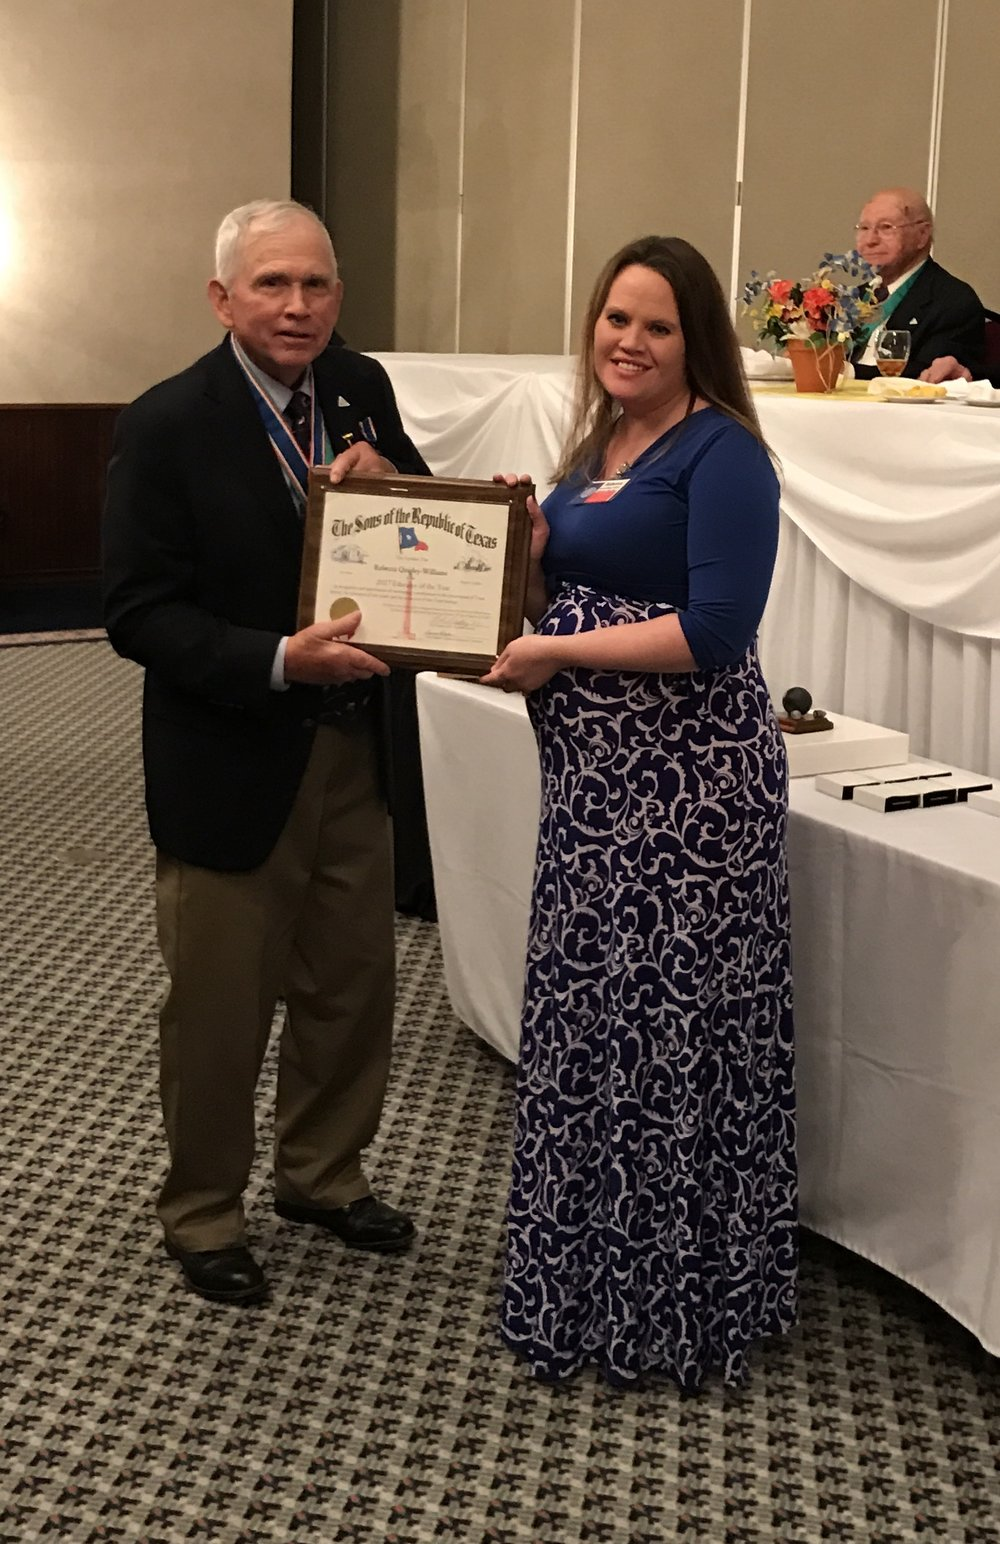 Rebecca Williams  of Schertz-Cibolo-Universal City Independent School District receives the 2016  Educator of the Year Award  from SRT  President General  Bob Steakley   at the YO Ranch Resort in Kerrville, Texas on March 18th.  Mrs. Williams  has been instrumental in the success of the Alamo Chapter's Texas Proud Essay Contest.